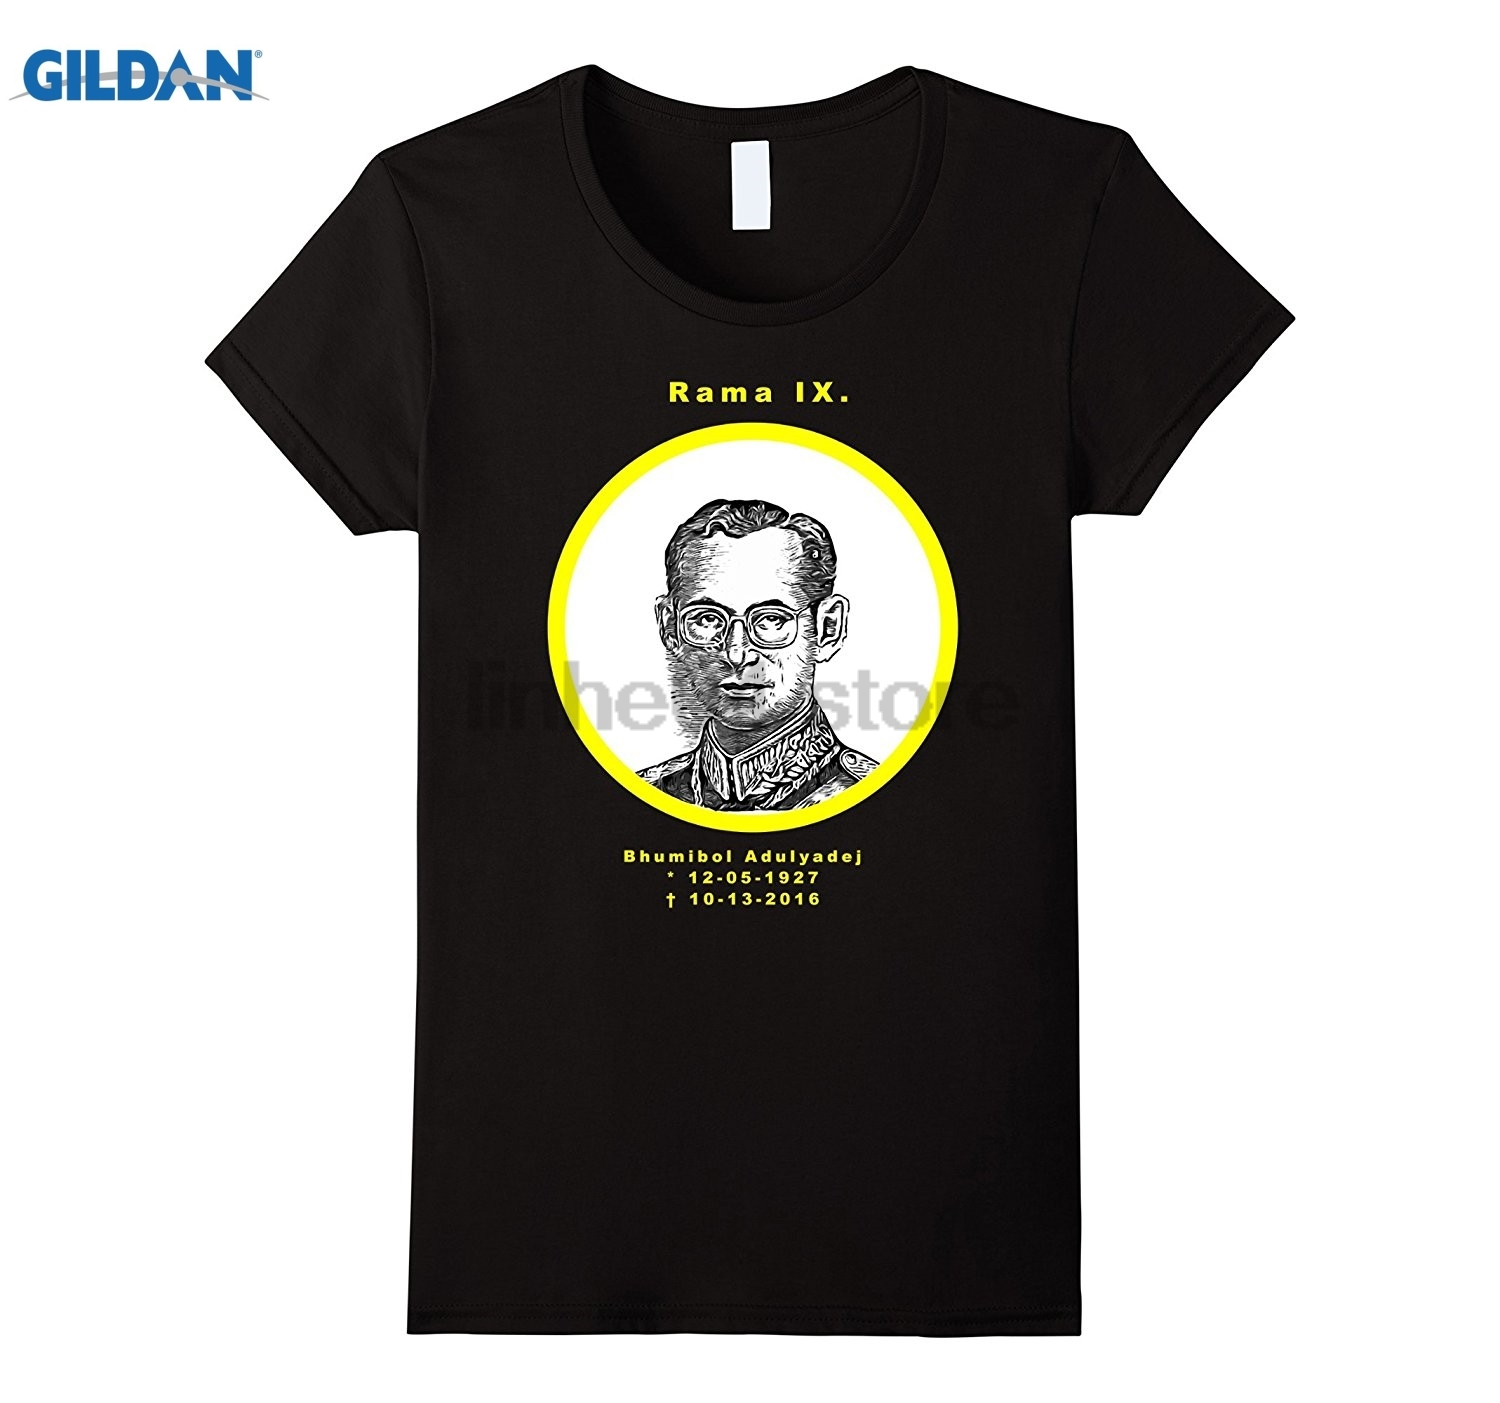 GILDAN Rama IX. Bhumibol Adulyadej Thailand King is dead T-Shirt glasses Womens T-shirt